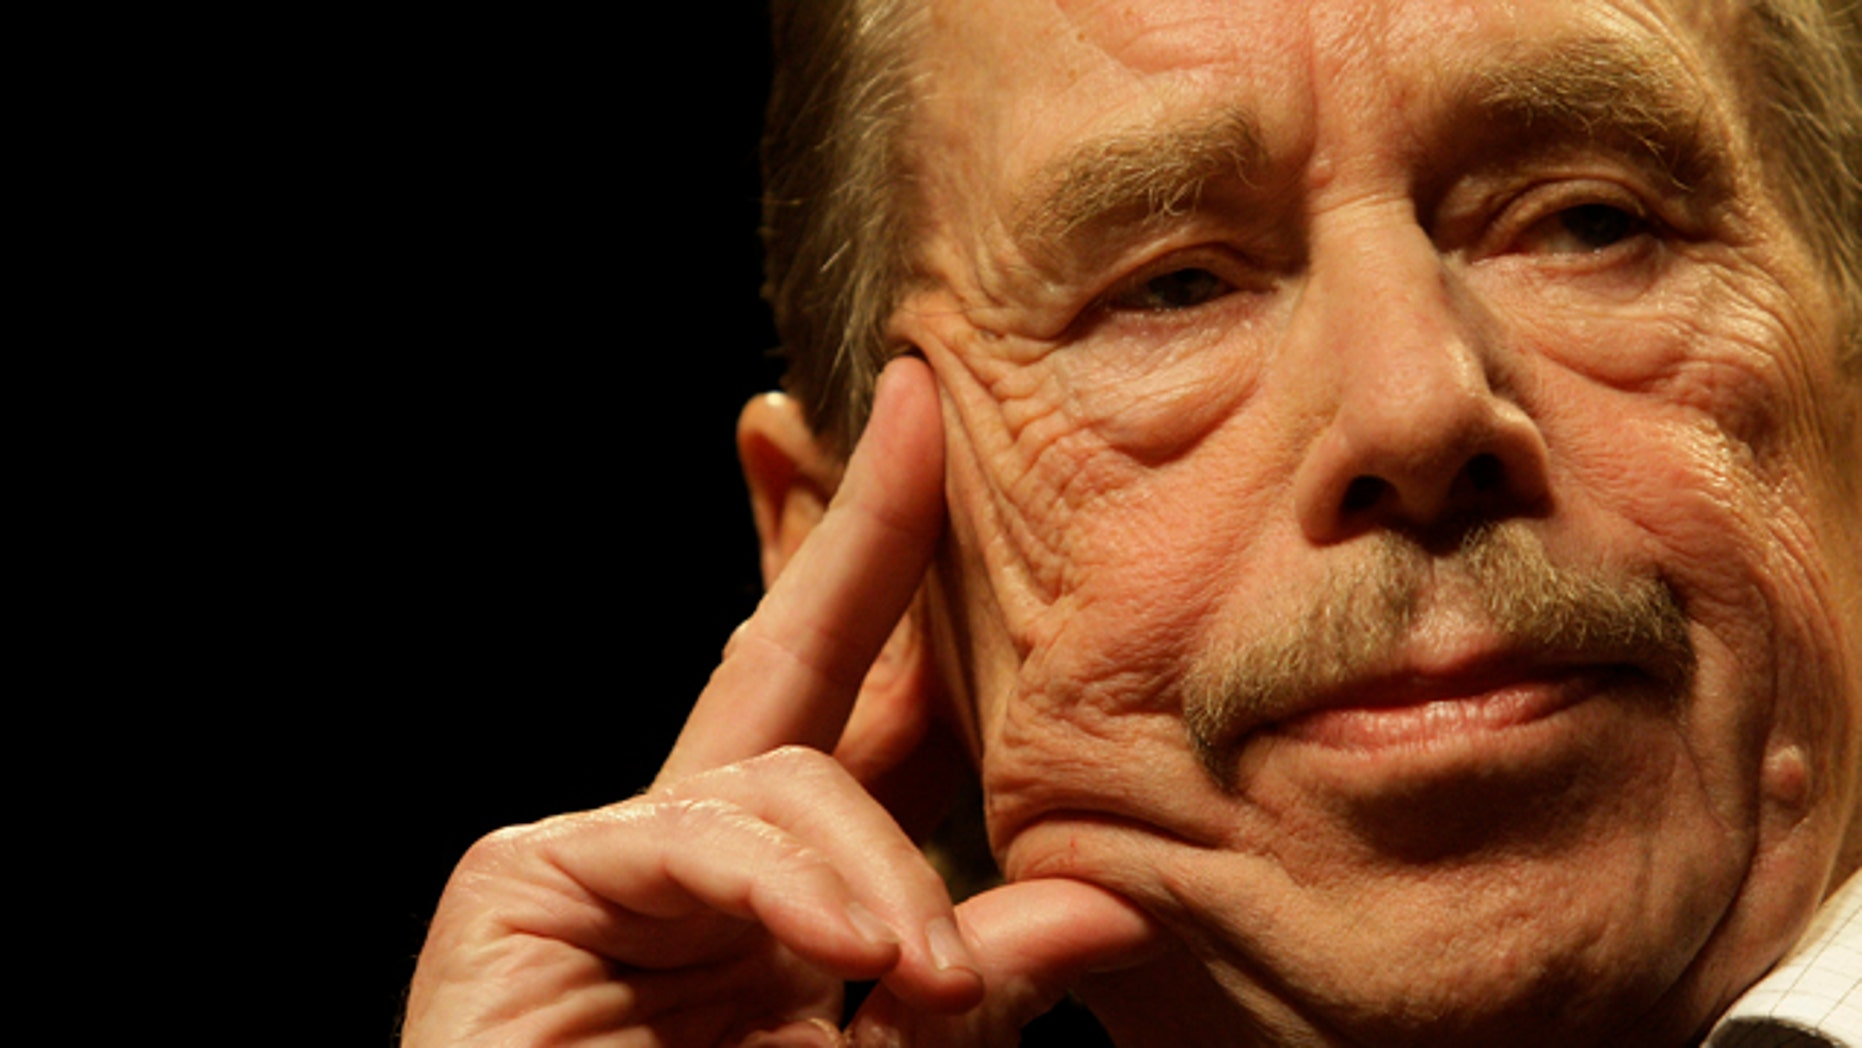 Oct. 15, 2009: File - In this file photo former Czech President Vaclav Havel is seen during a press conference on occasion of the 20th anniversary of the changes in Czechoslovakia and the fall of the Iron Curtain in Prague.